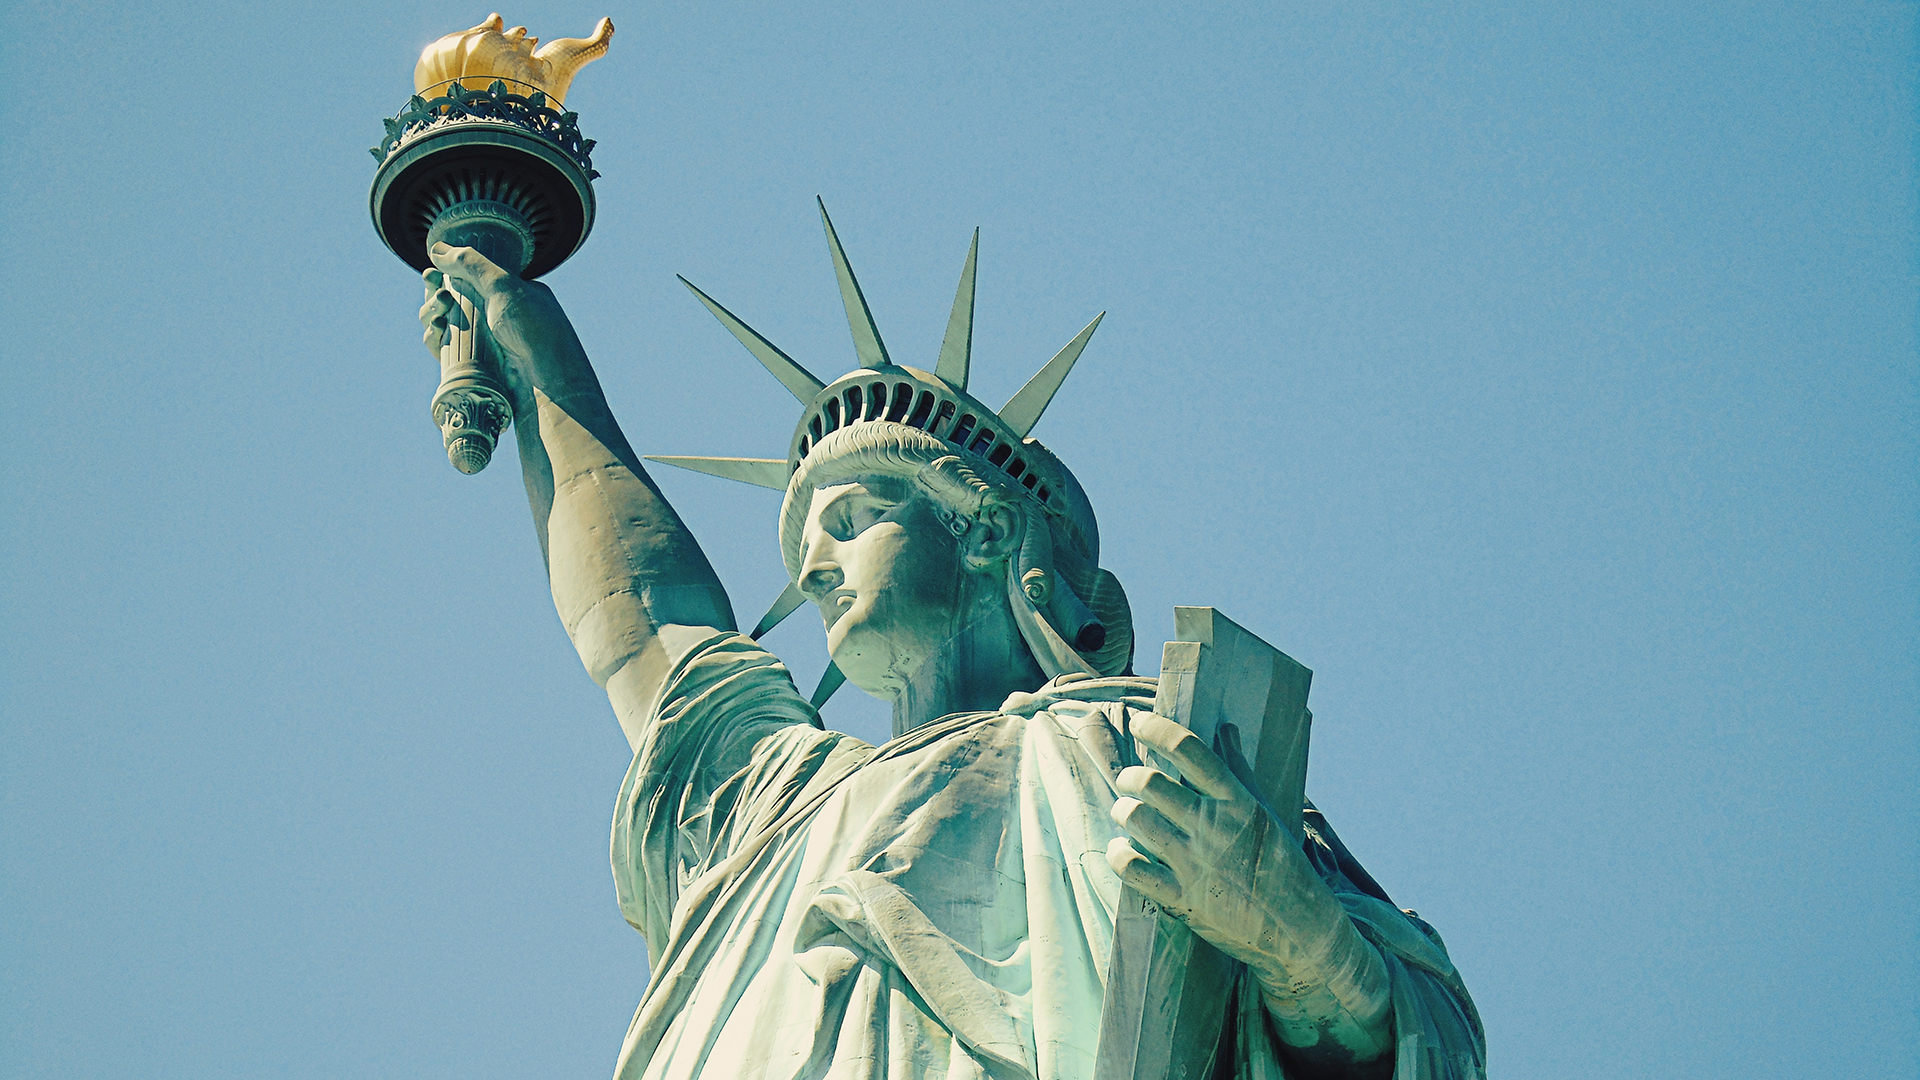 July 4 1884 The Statue Of Liberty Was Presented To The United States Lifetime